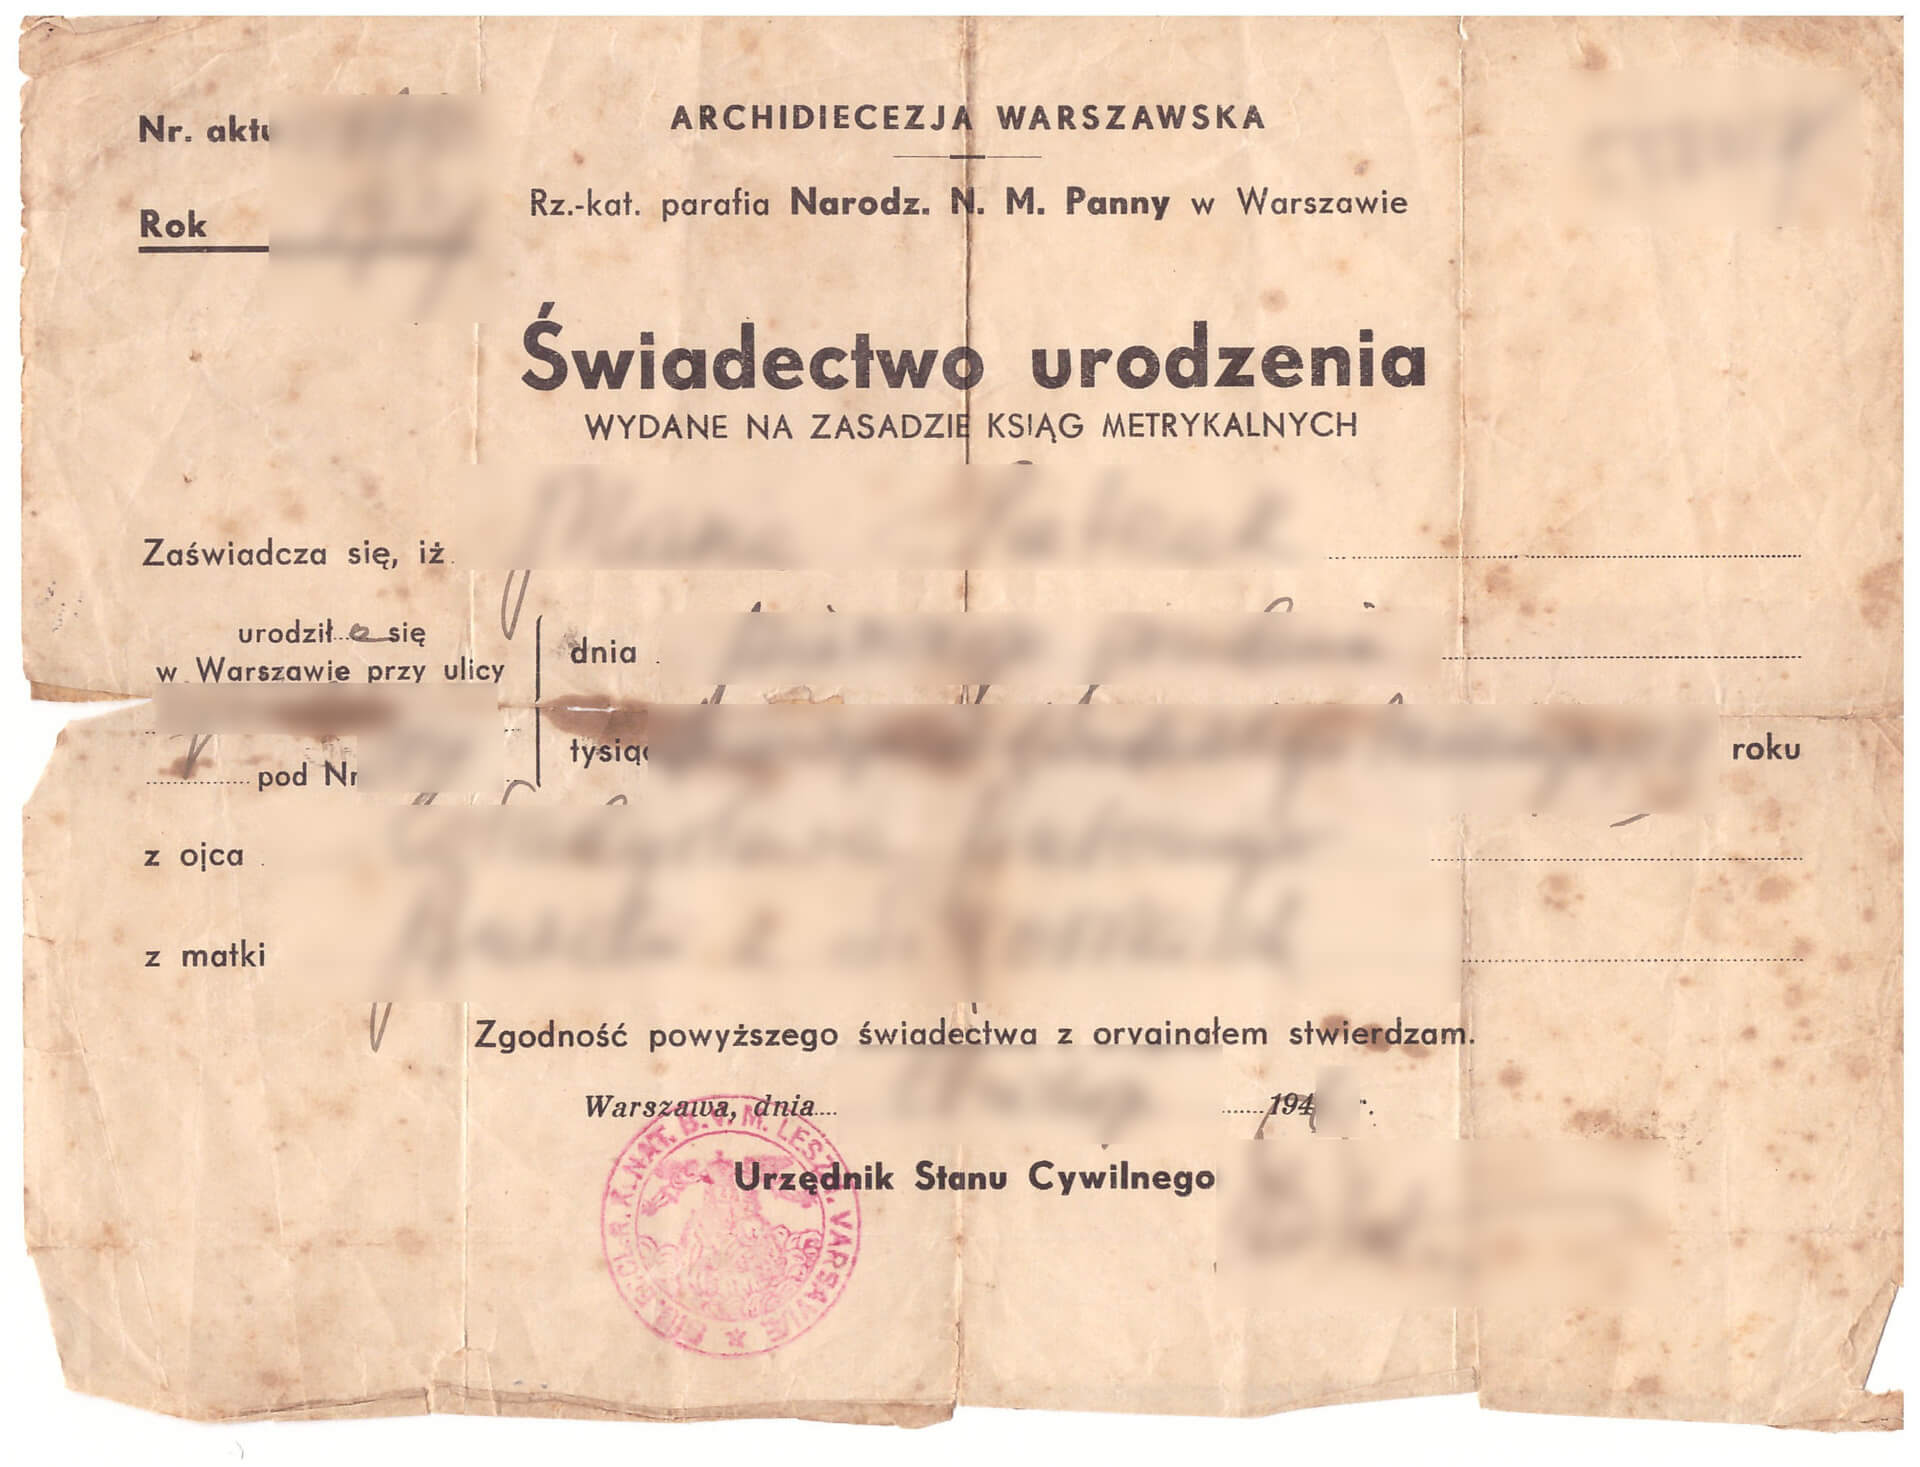 Polish document, a civil record, a certified copy of birth certificate / Świadectwo urodzenia